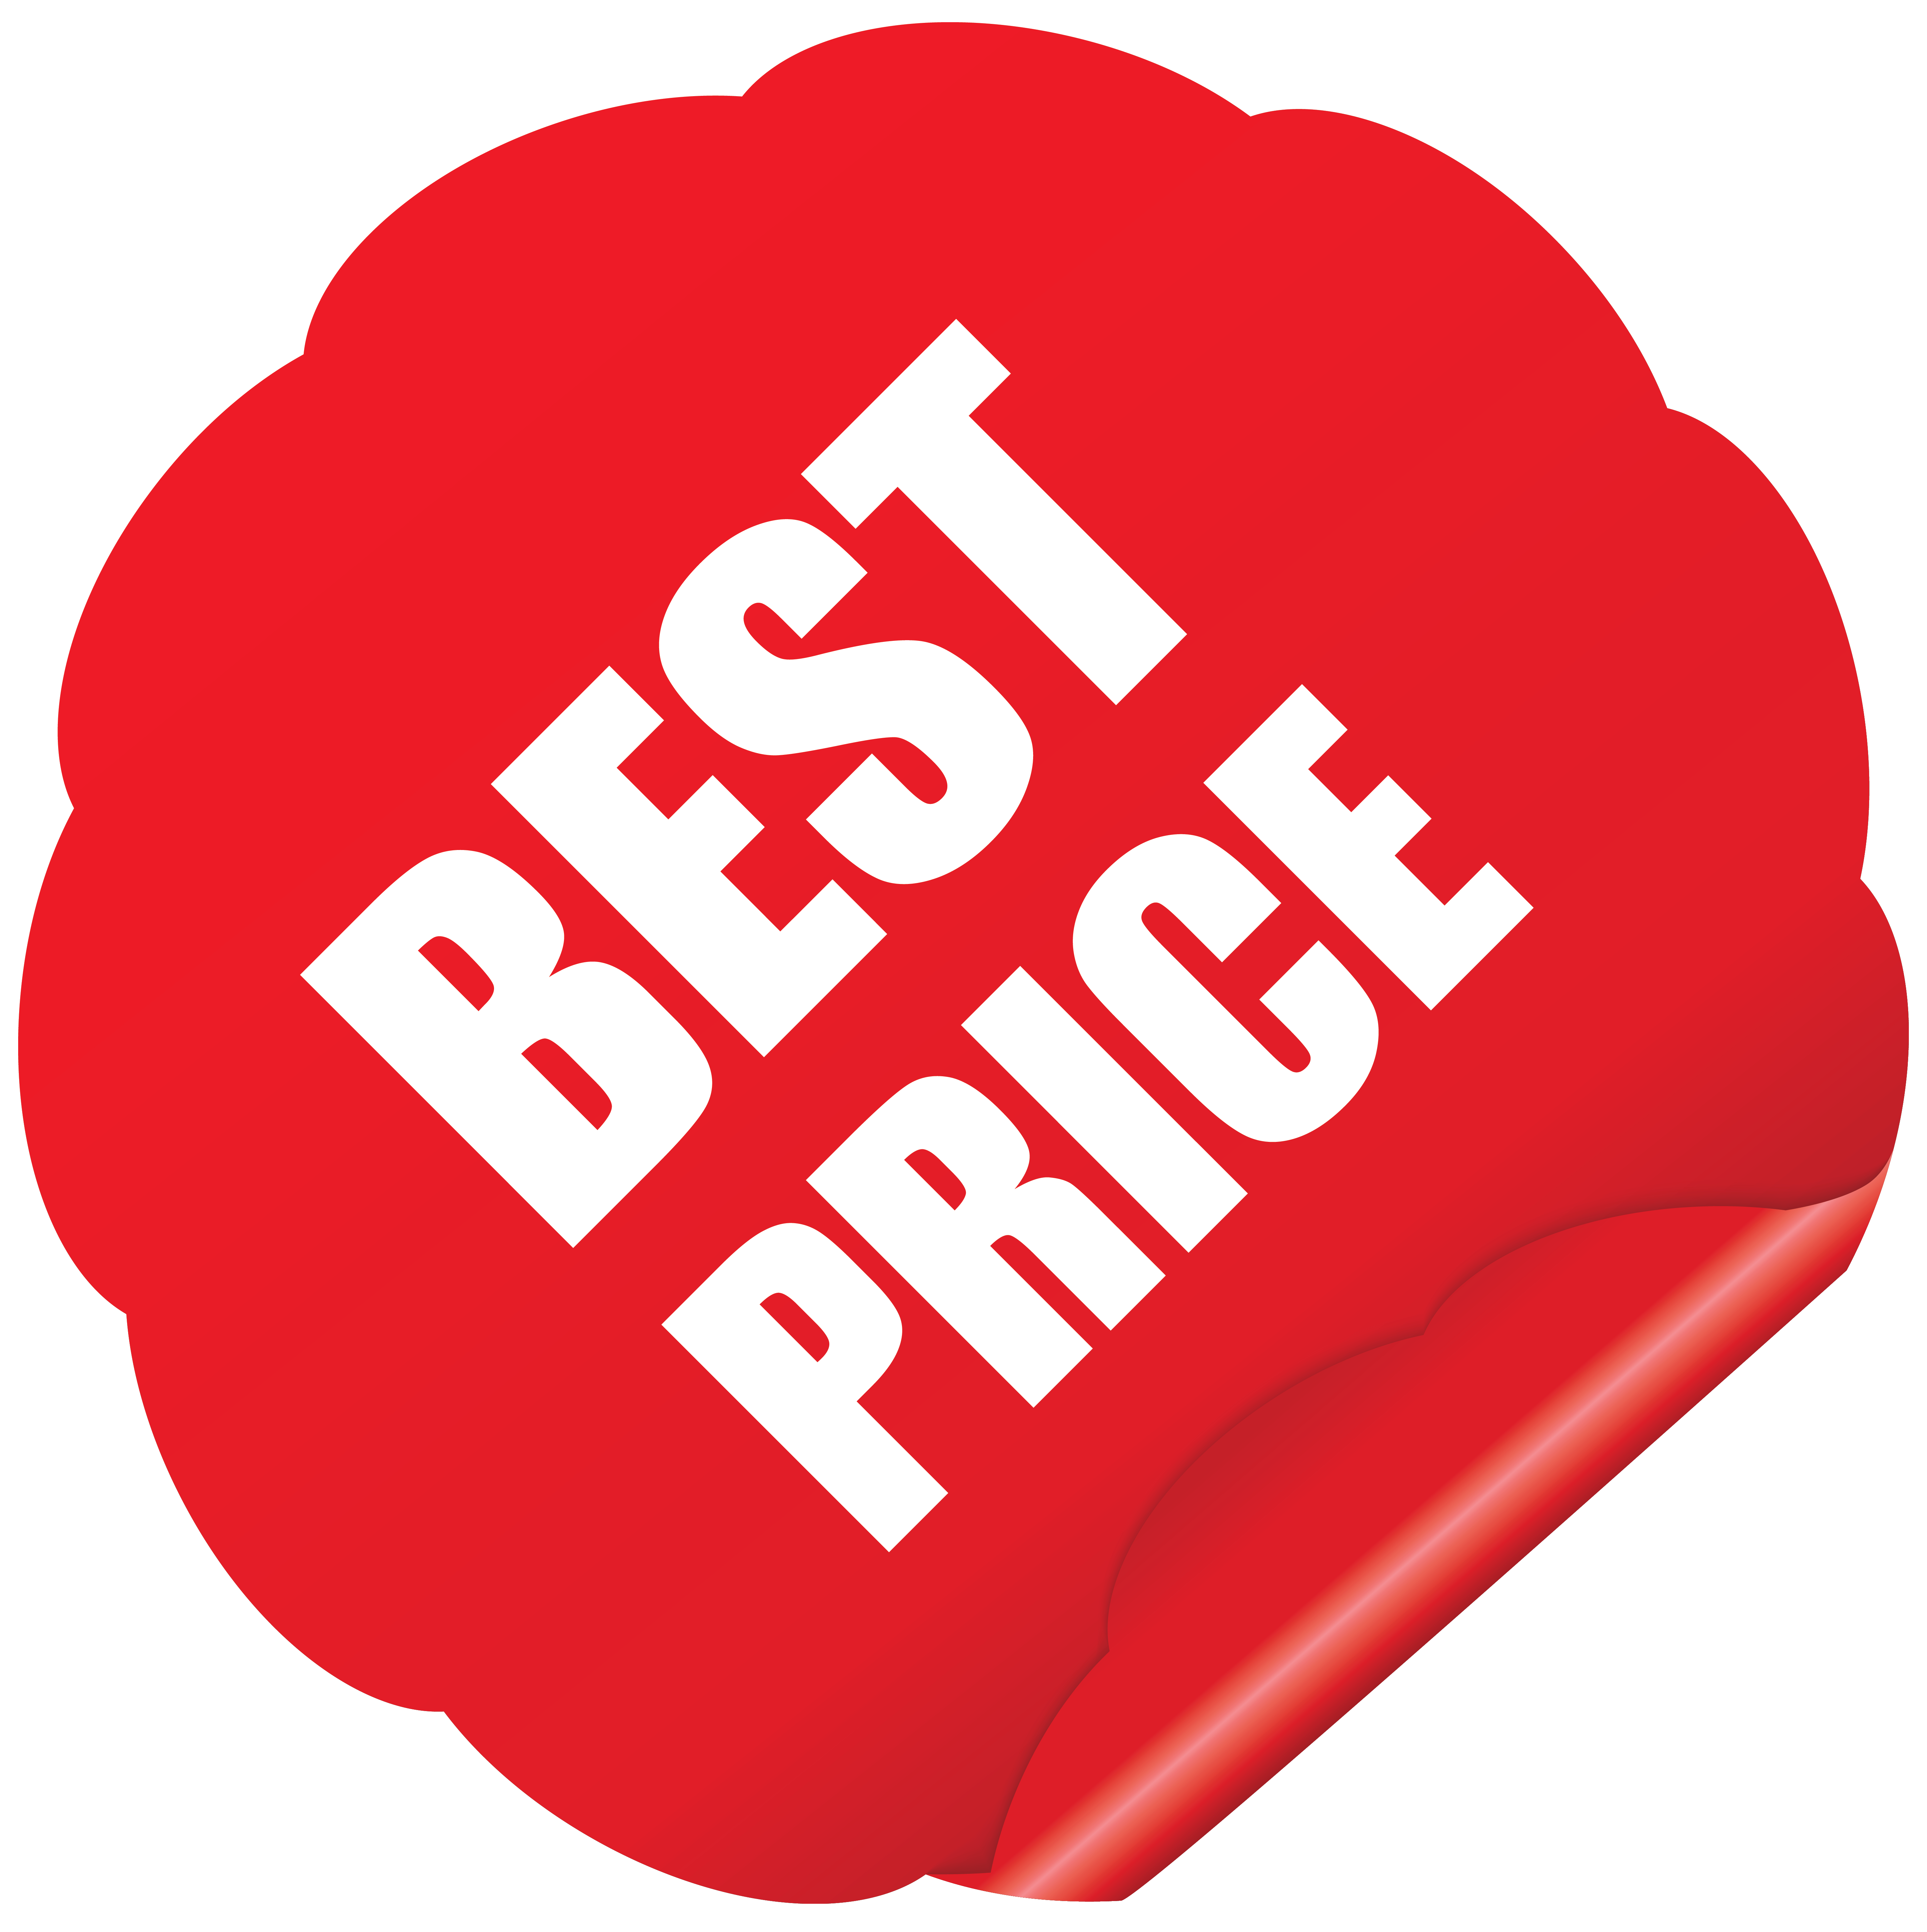 Sticker png download. Best price clipart picture